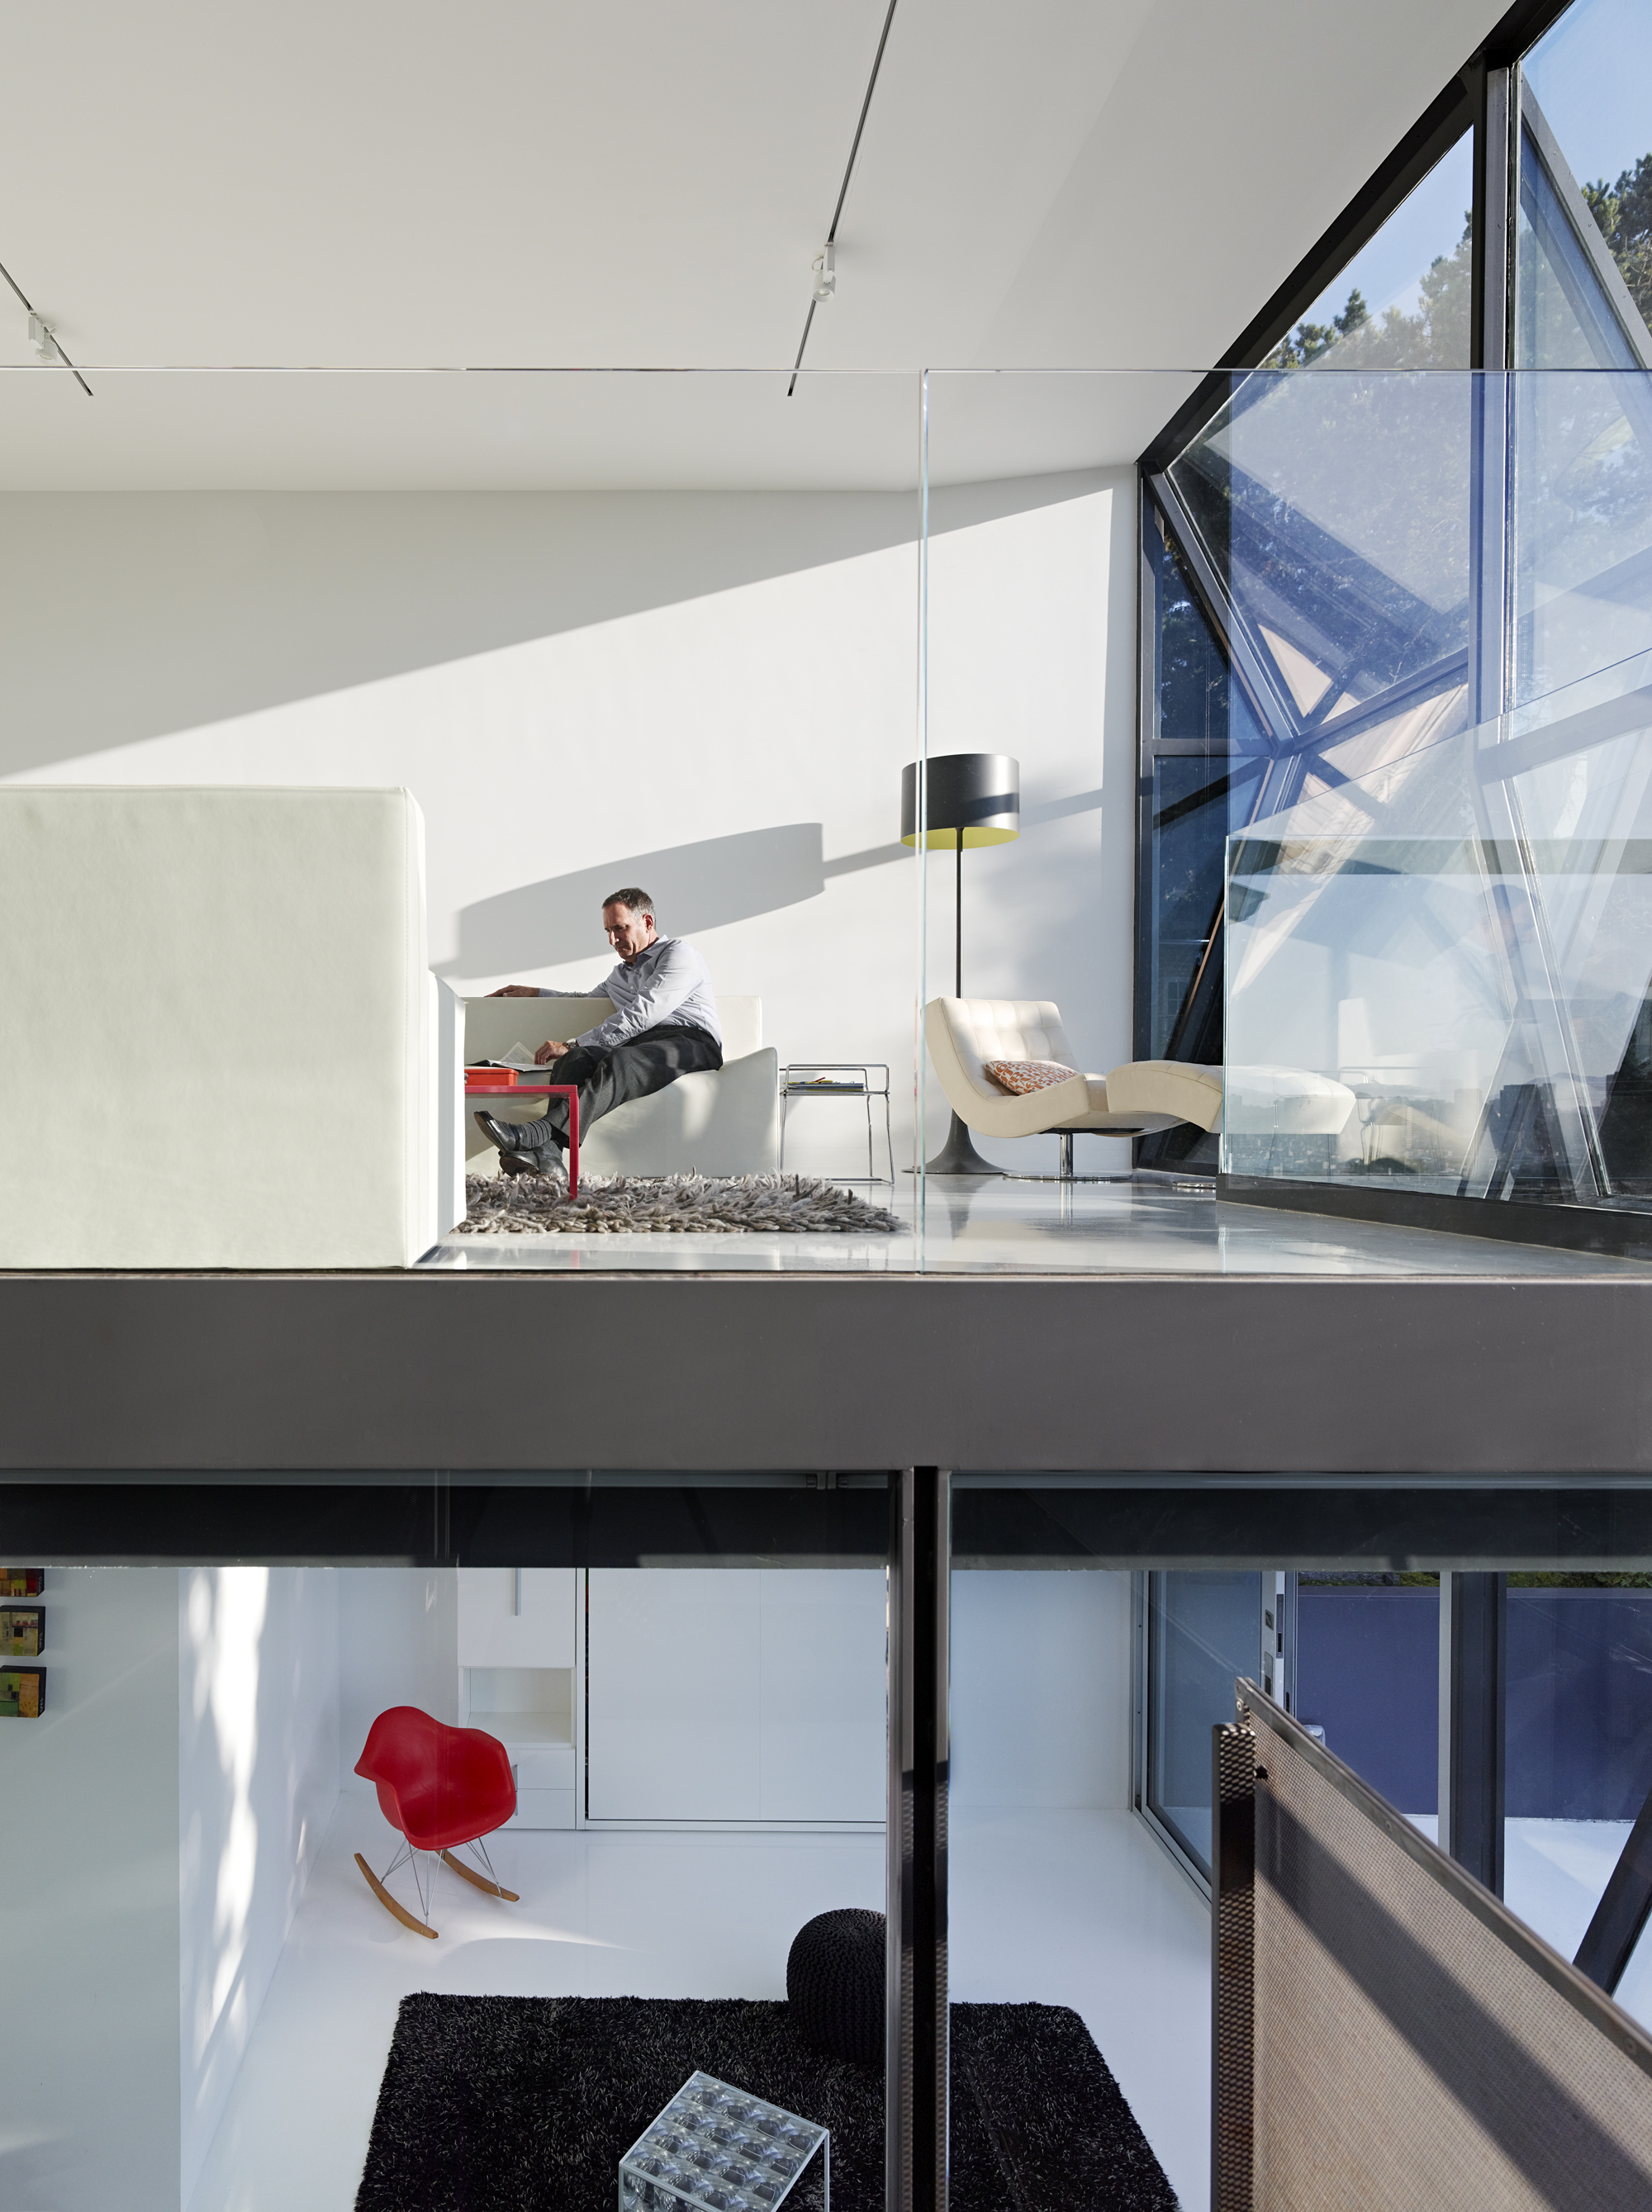 This striking side view of the home showcases the minimalist structure, with two layers visible at once. Upper living room features white leather chaise near windows, with all white furniture surrounding grey shag rug and red coffee table. Lower room features black rug and red chair standing out in all white space.